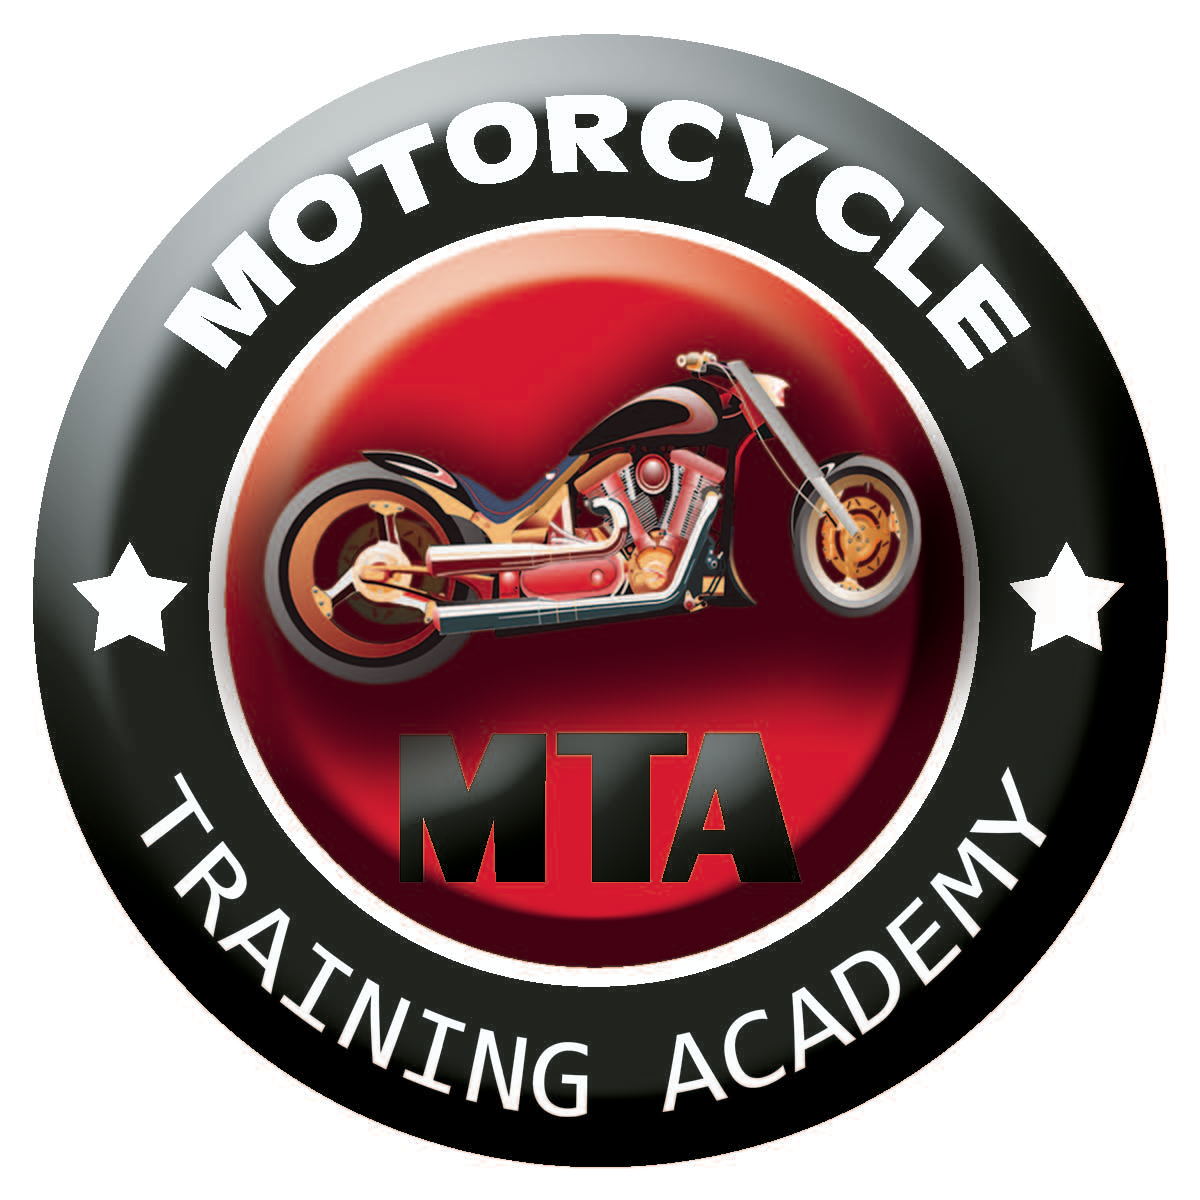 Motorcycle Stores Near Me >> Motorcycle Training Academy Coupons near me in Colorado Springs | 8coupons